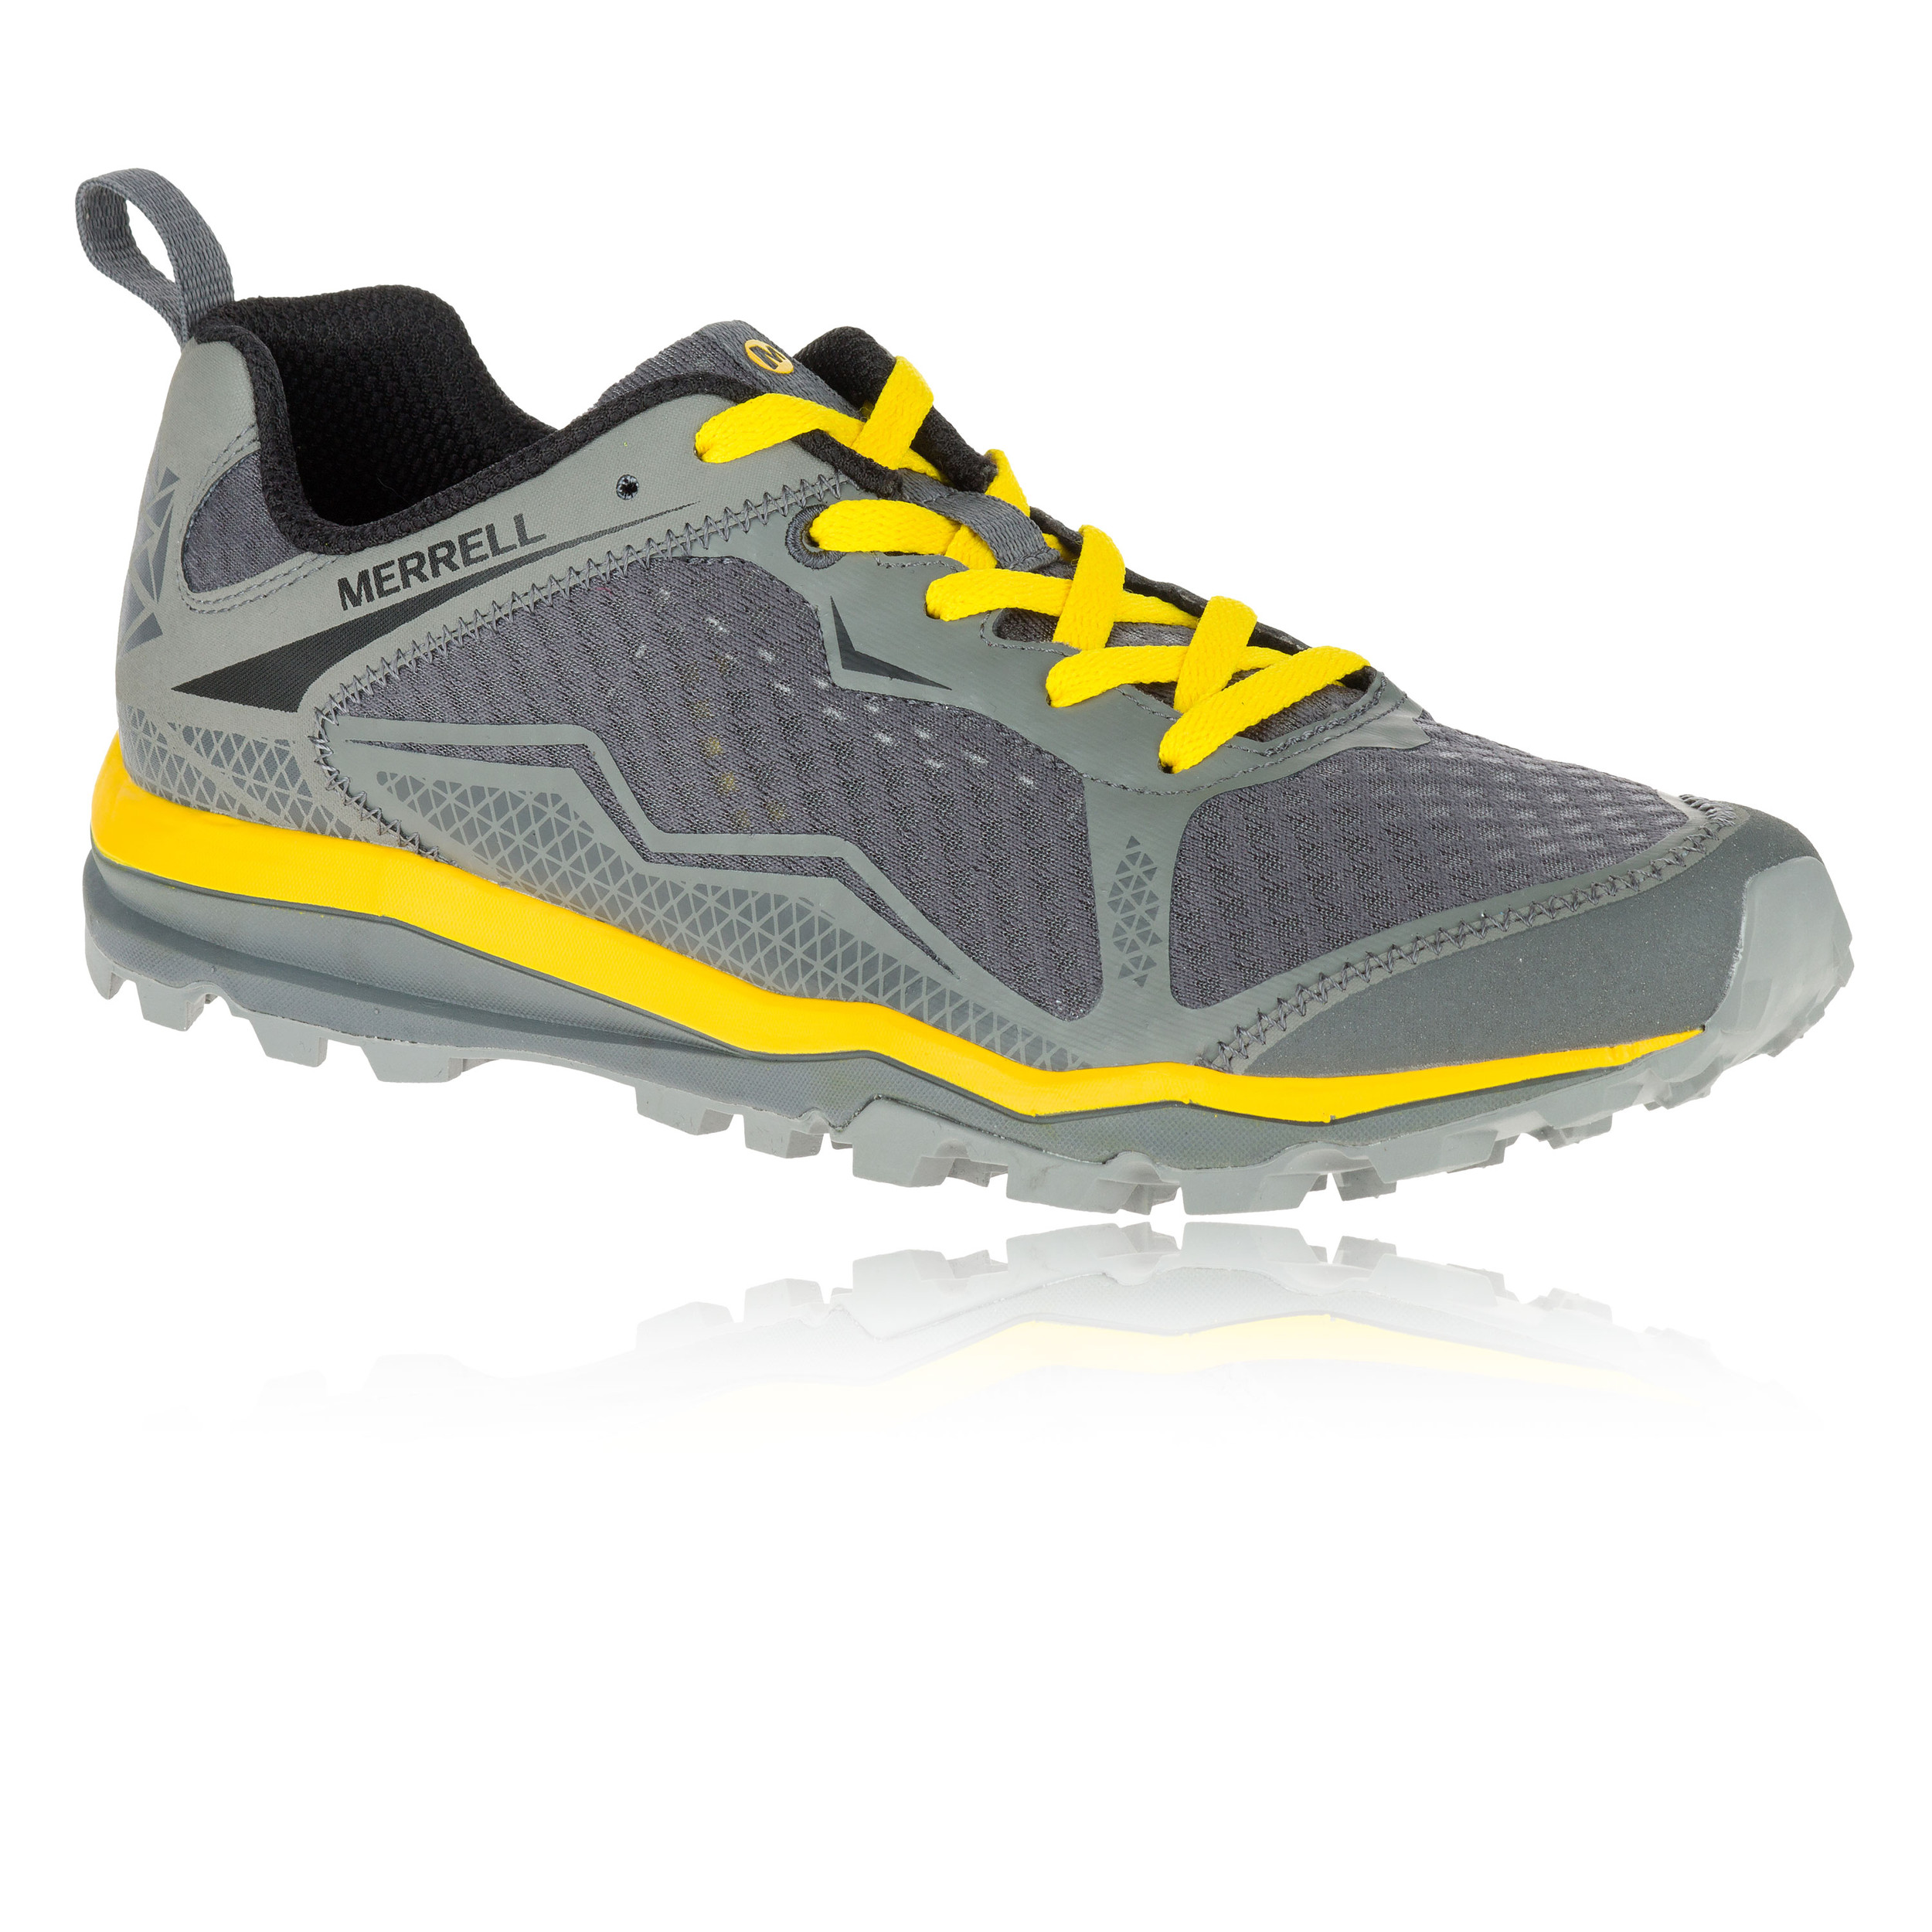 9b1e52ba55 Details about Merrell Mens All Out Crush Light Trail Running Shoes Sports  Trainers